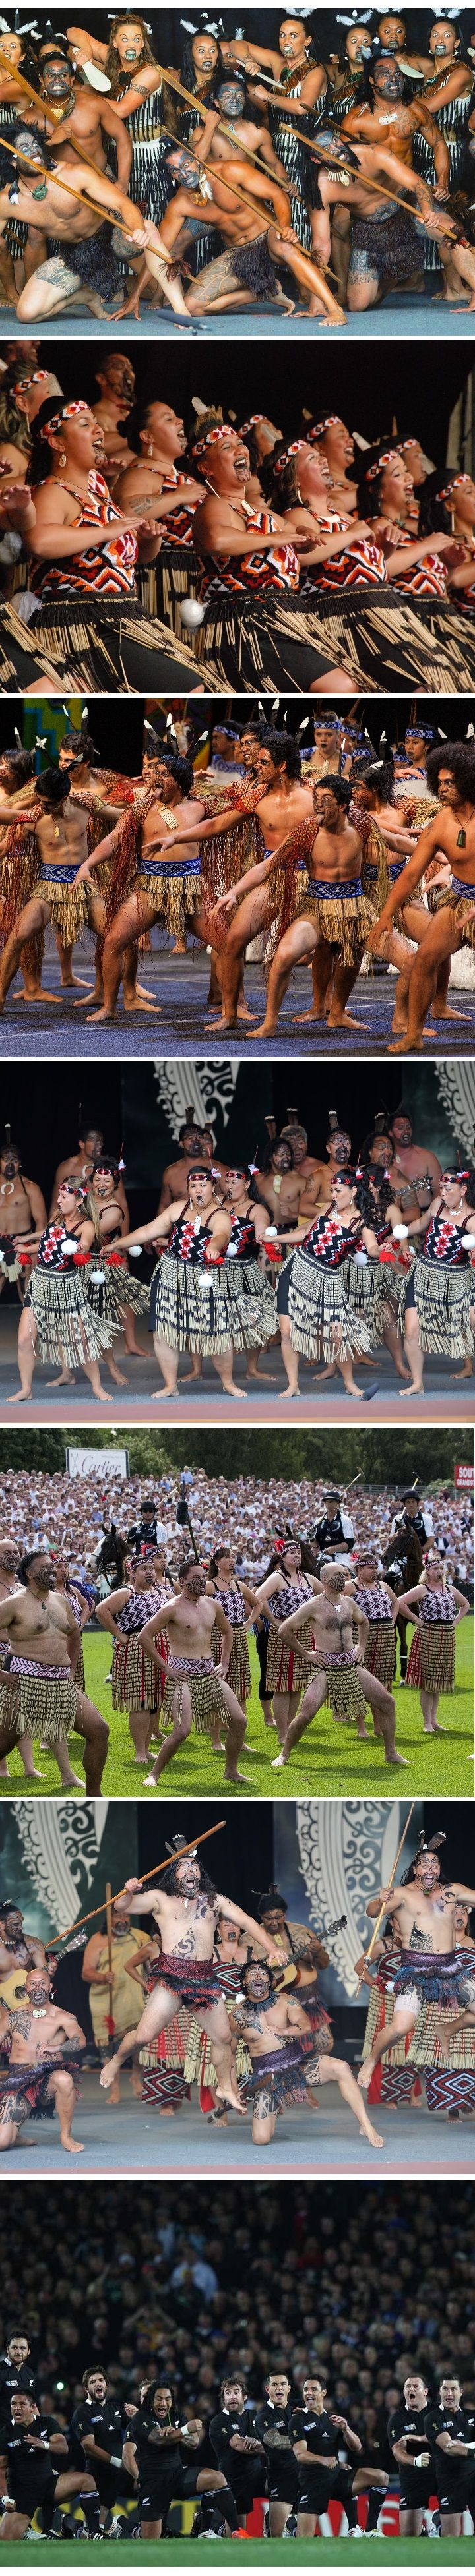 The Haka - Maori - Aotearoa - Warrior dance from New Zealand . I would love to see this in person some day